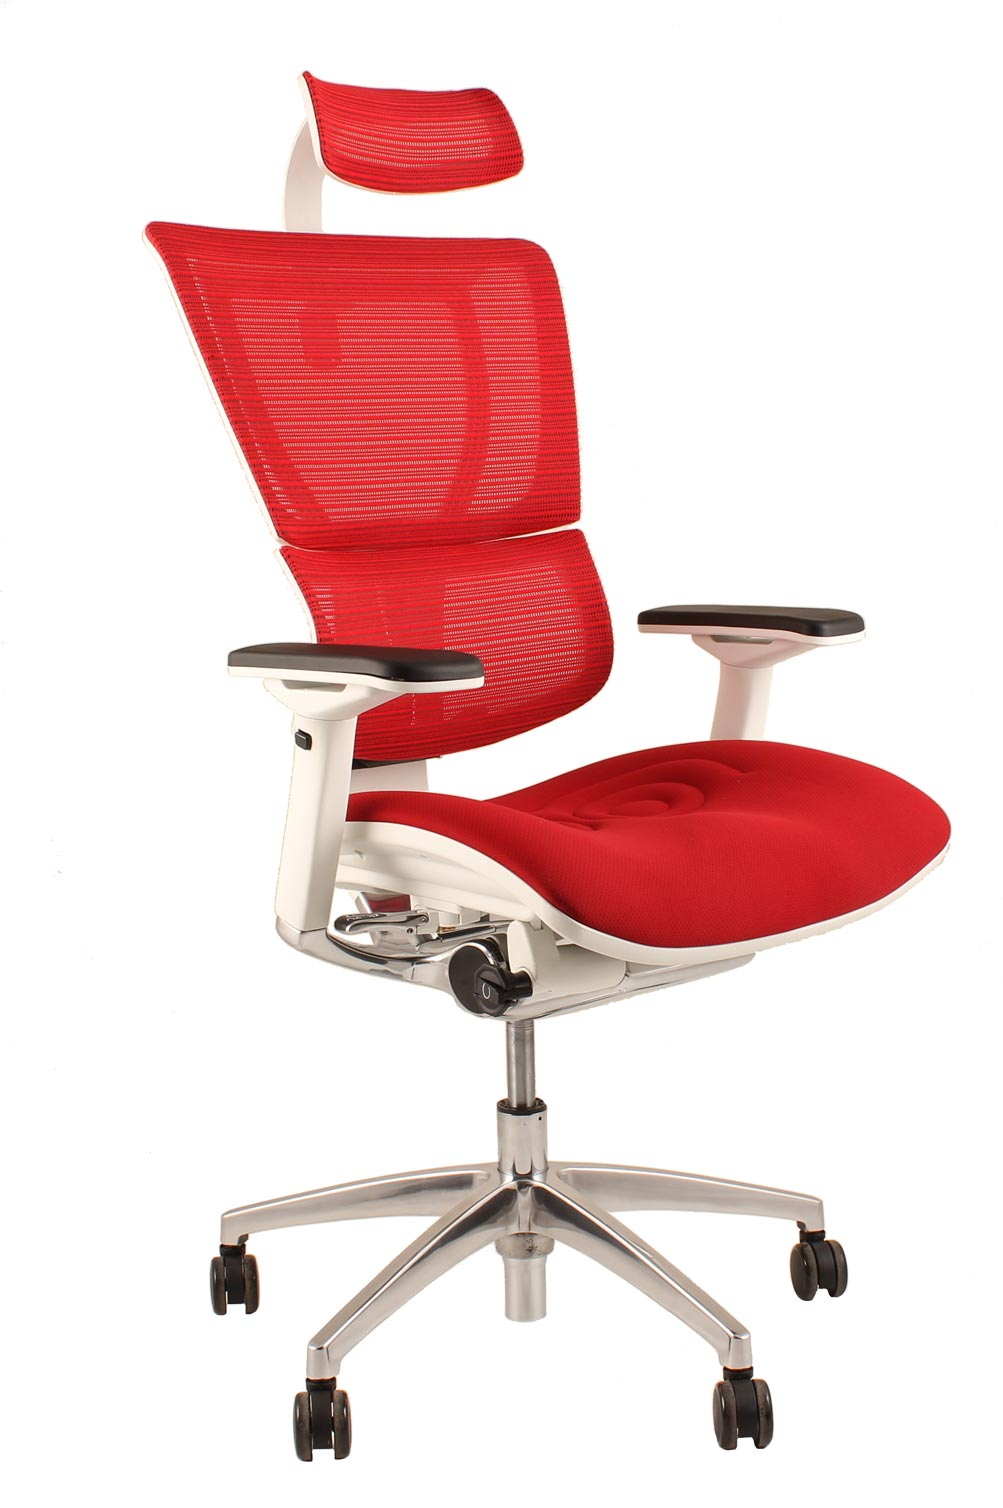 back-care-chairs-IMAGE 8